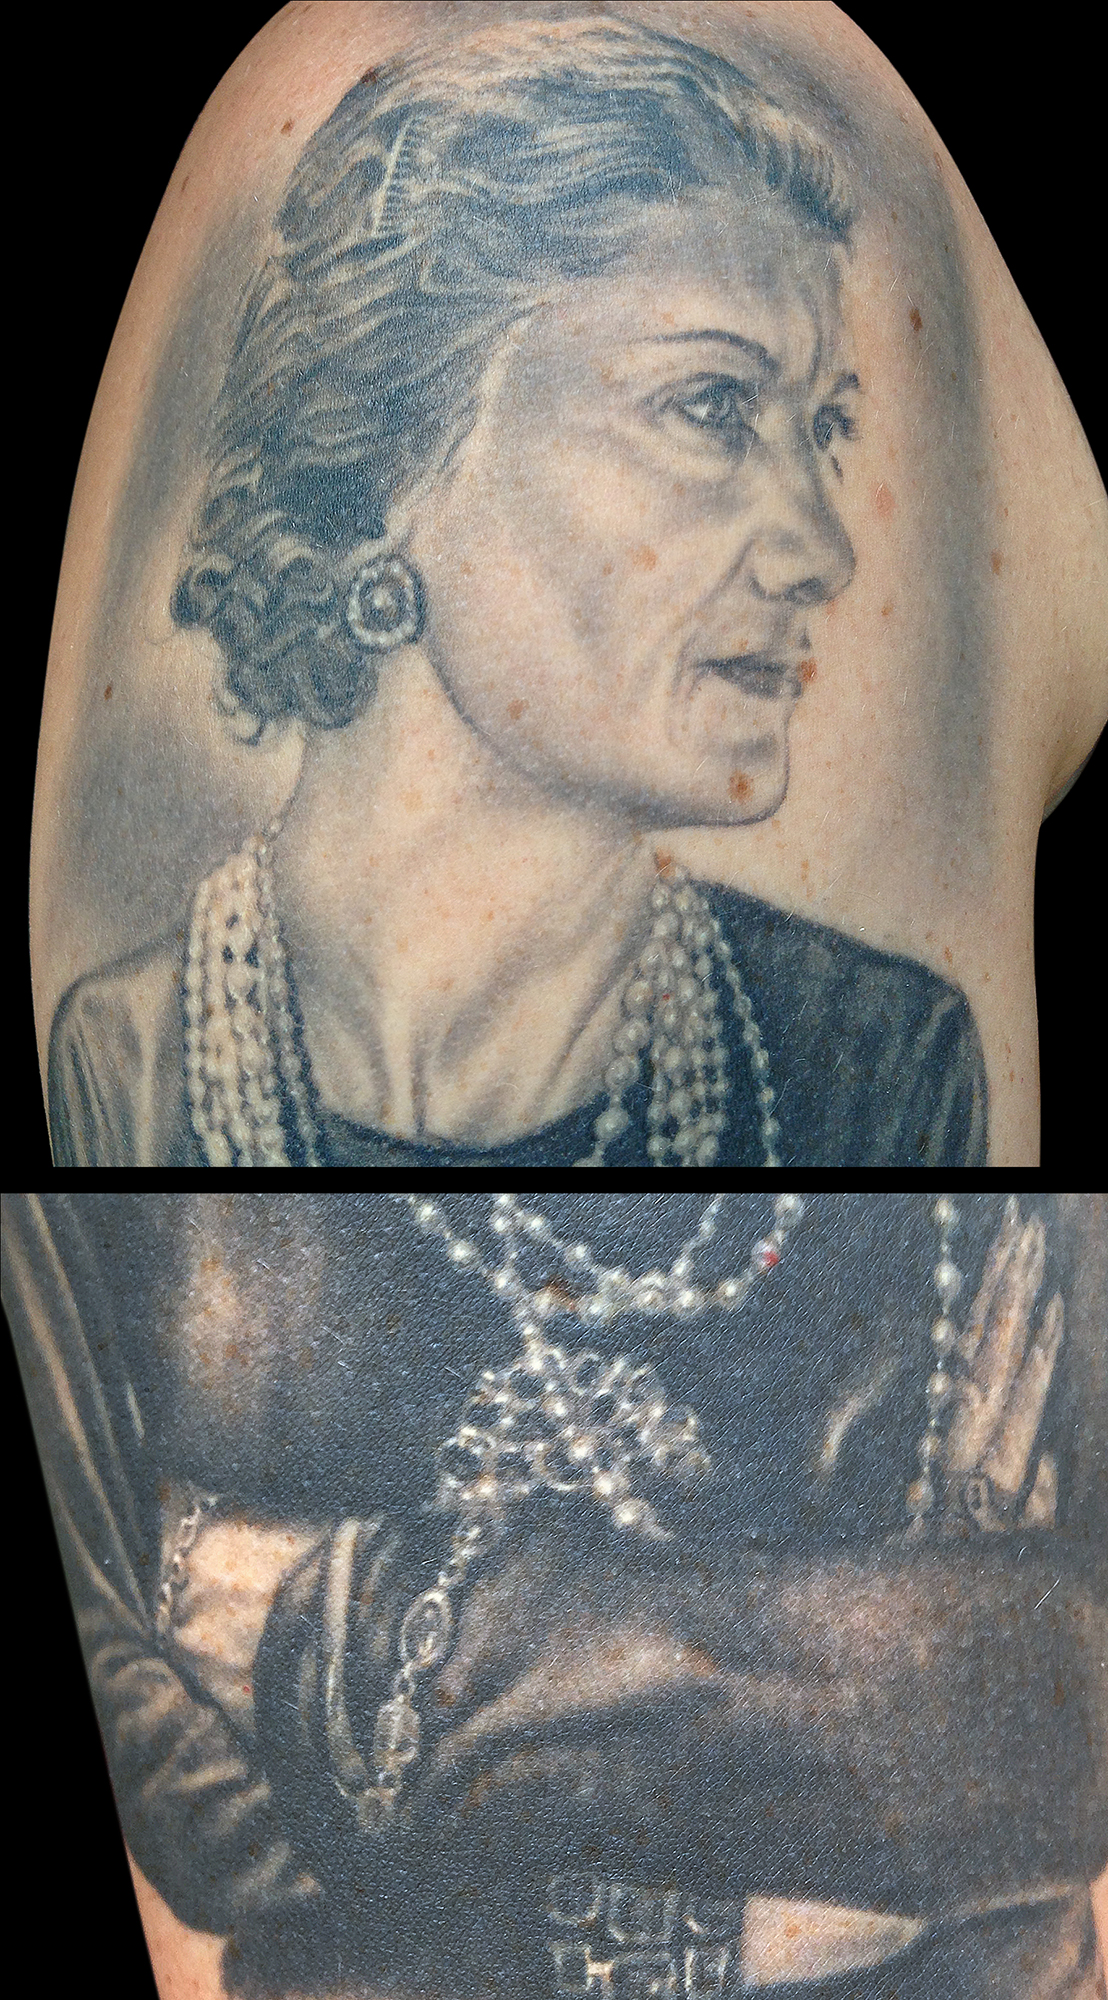 Black and Grey Coco Chanel Portrait Tattoo, (healed) detail zoom of face and jewelry